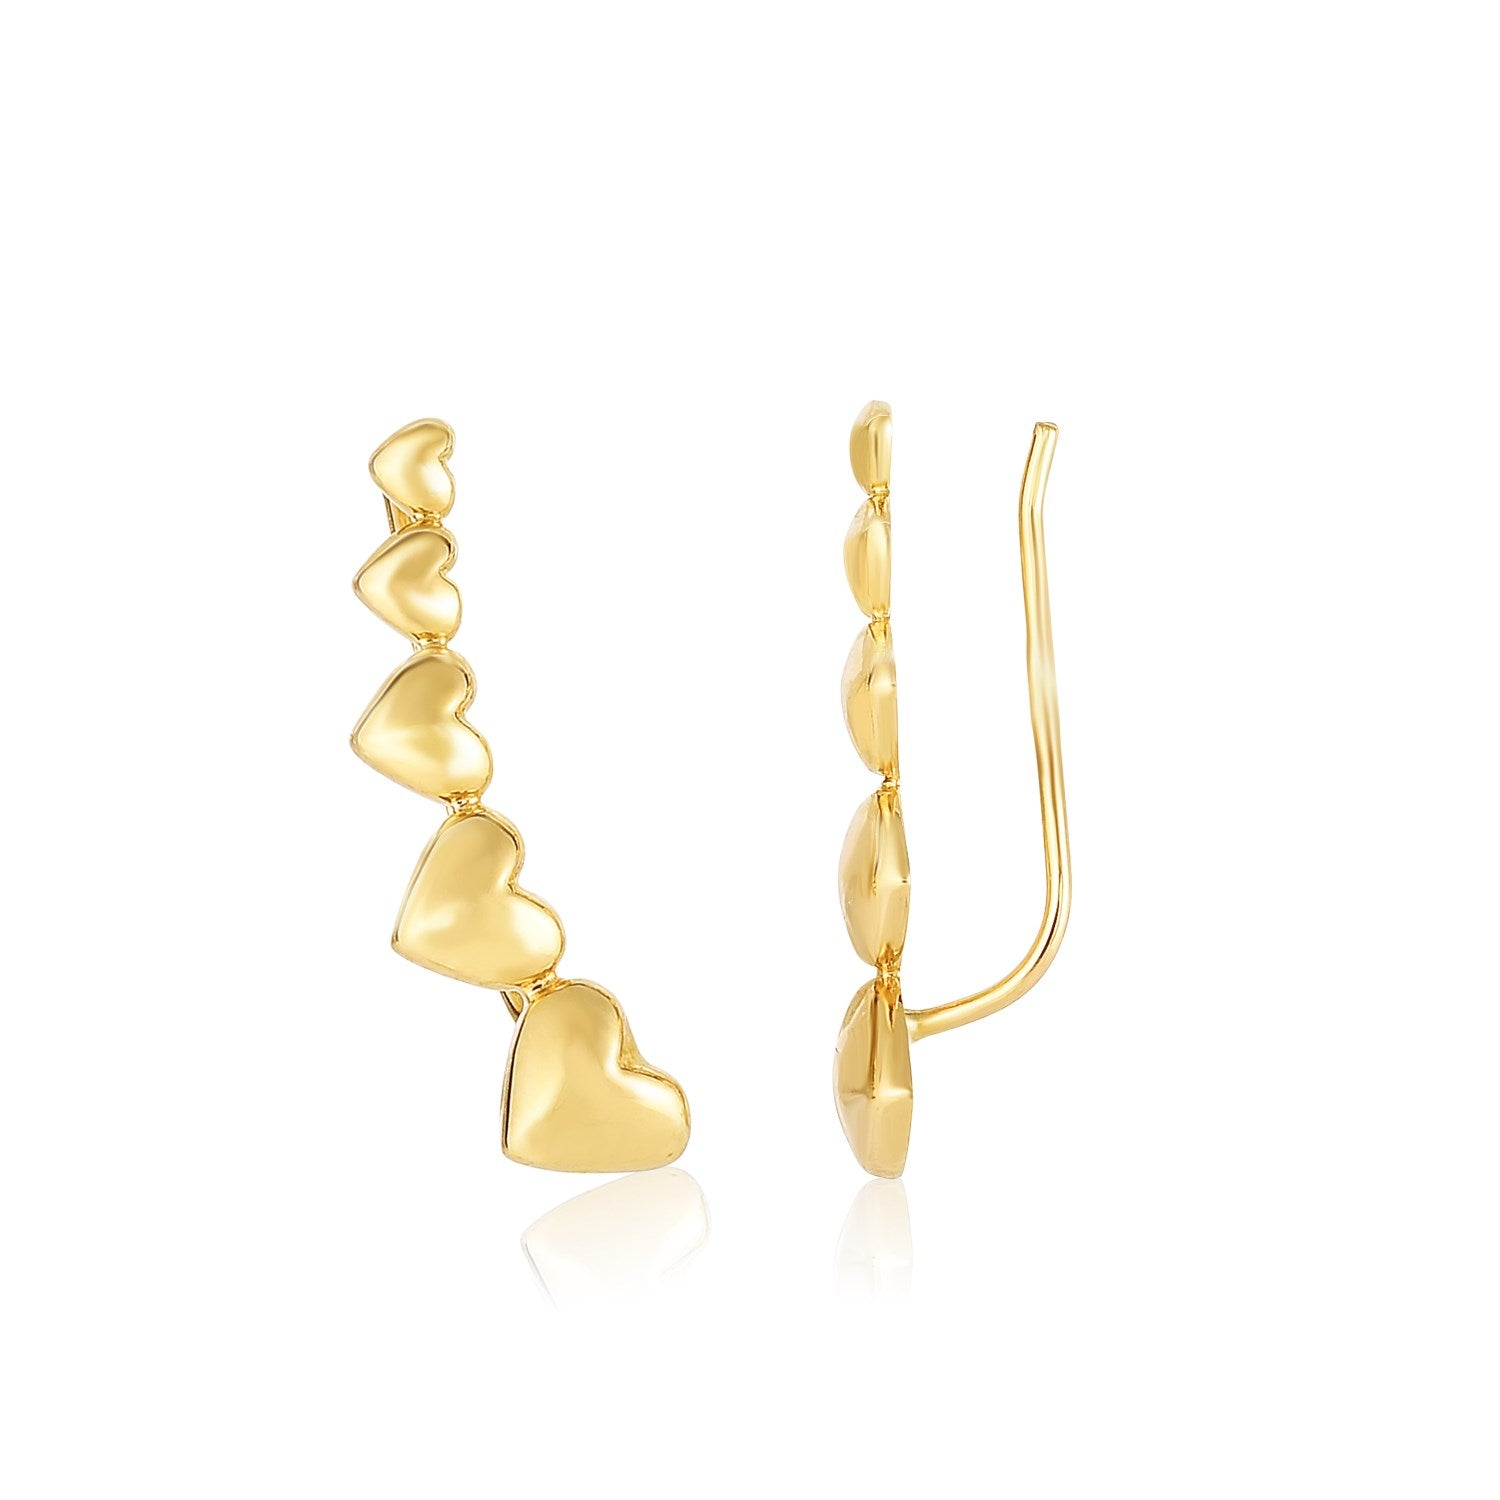 14K Yellow Gold Graduated Heart Climber Style Stud Earrings